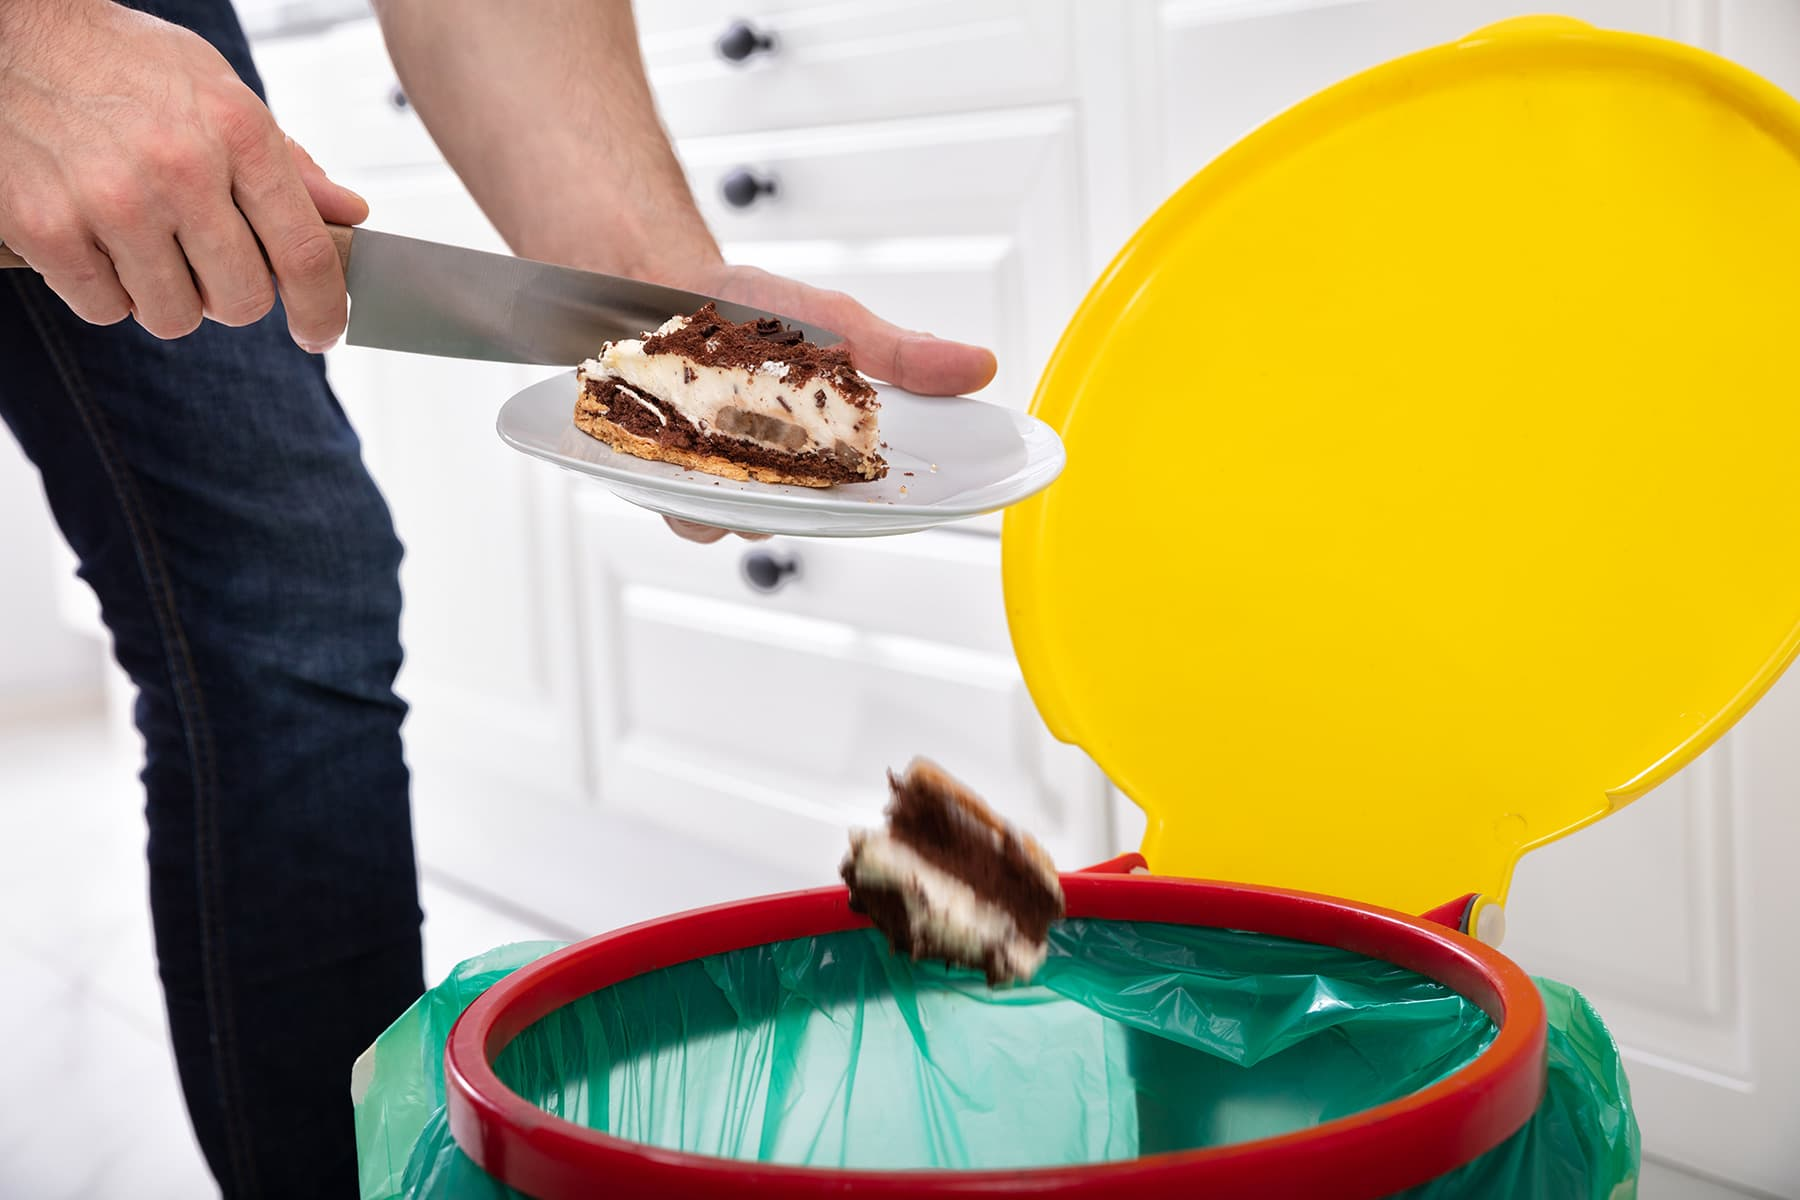 Americans Toss Out Nearly a Third of Food at Home  - web md